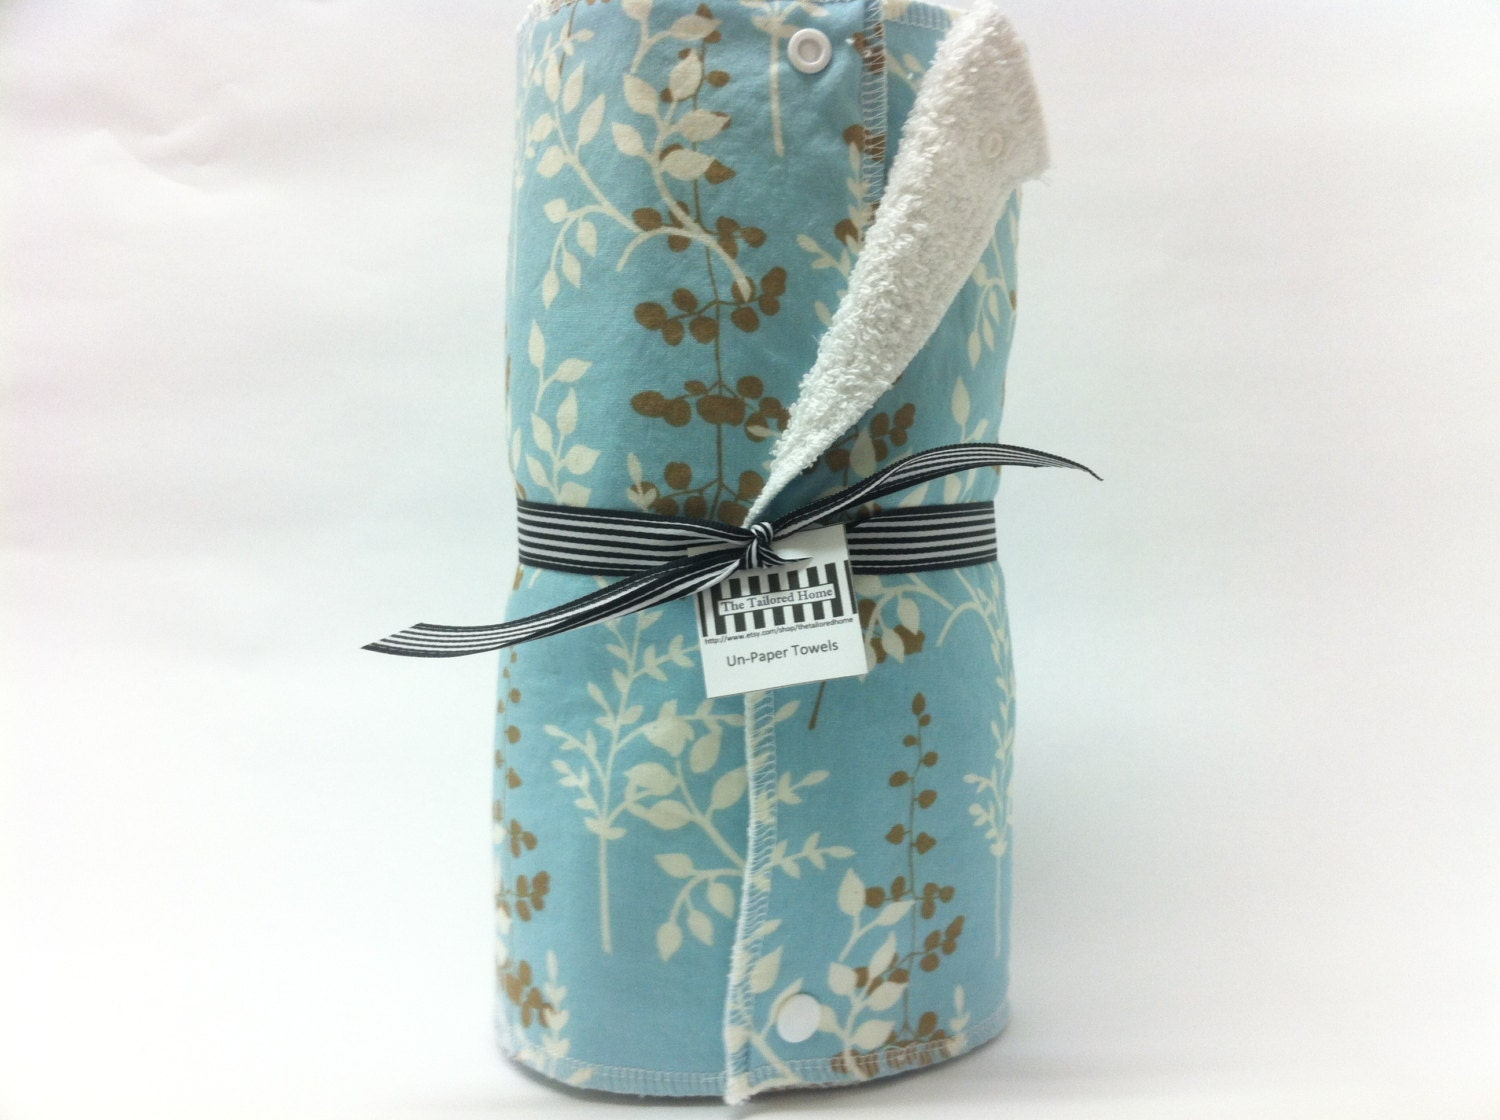 Reusable Paper Towel, Paper Towel, Cloth Paper Towel, Eco Friendly, Towels With Snaps - Enchanted Forest - TheTailoredHome